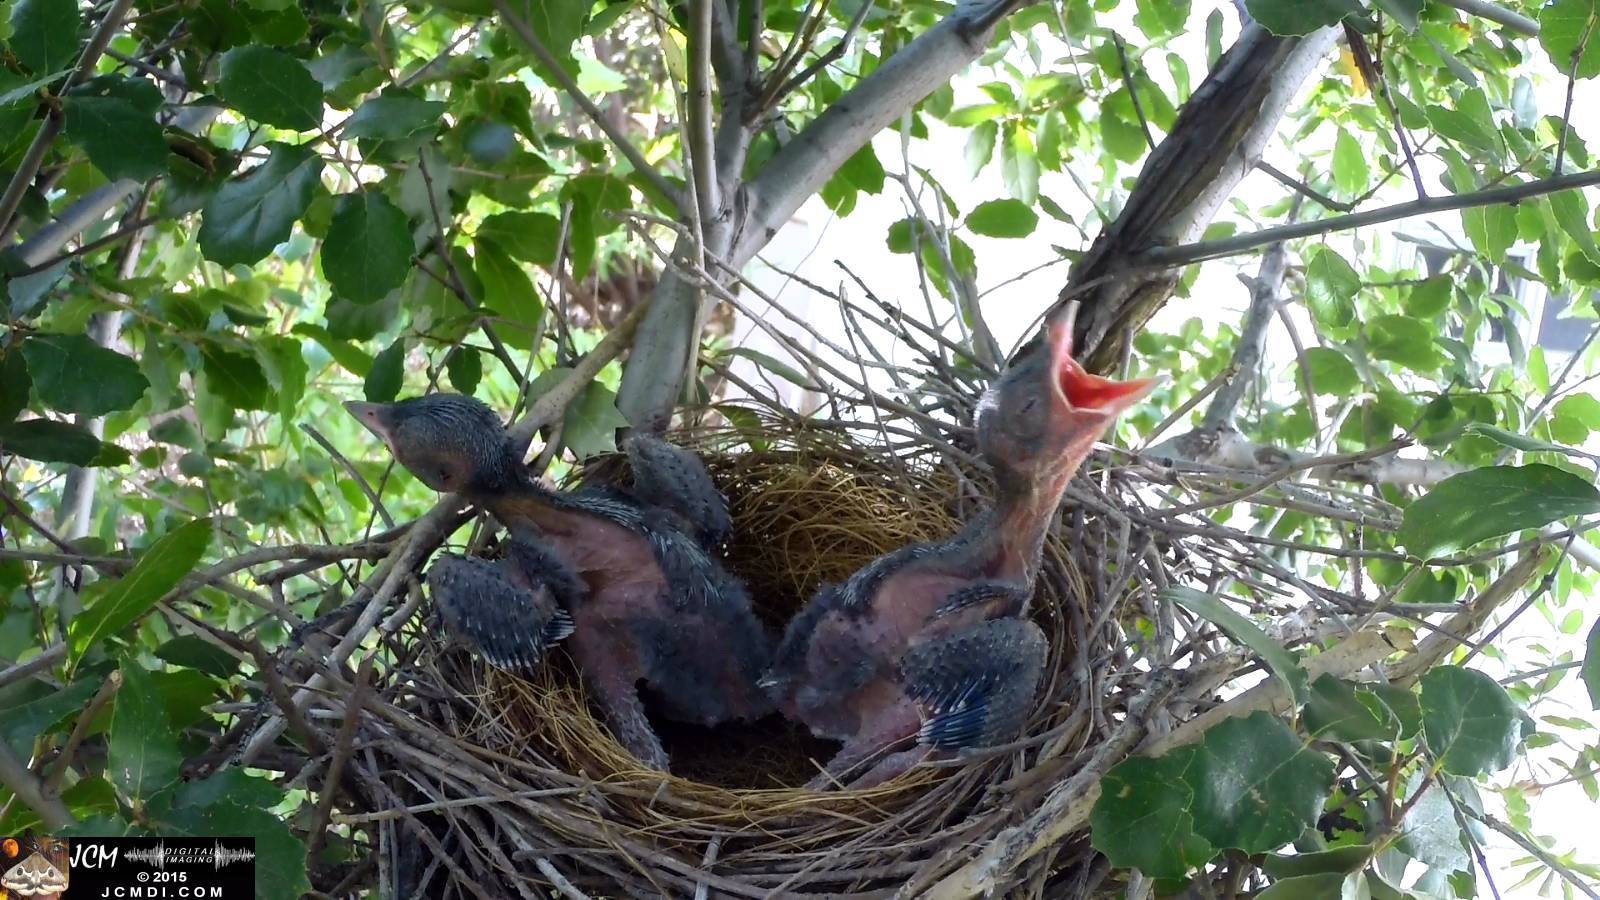 Scrub Jay nest documentary - chicks resting in nest